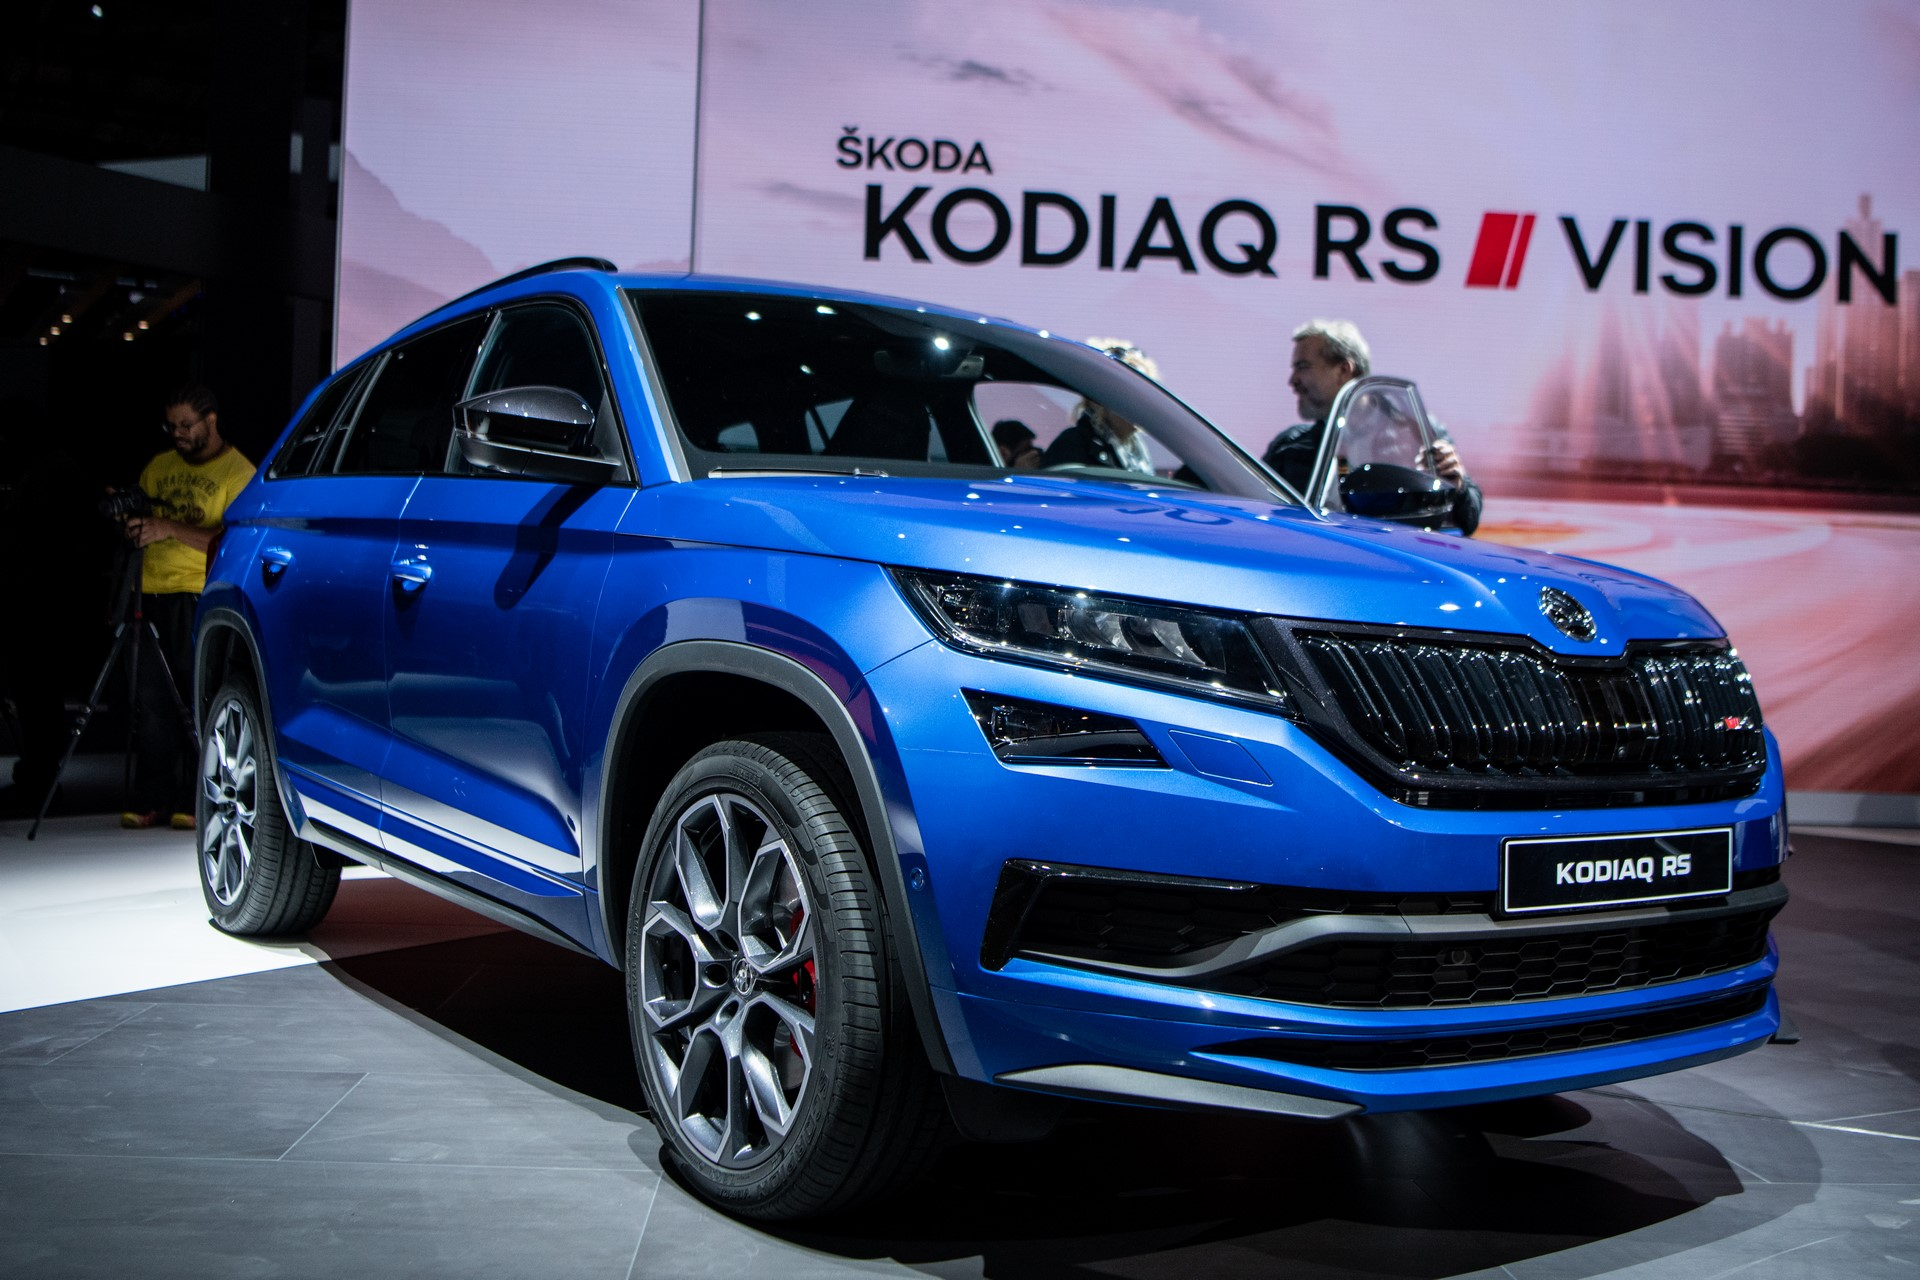 kodiaq-rs-skoda-blue-paris